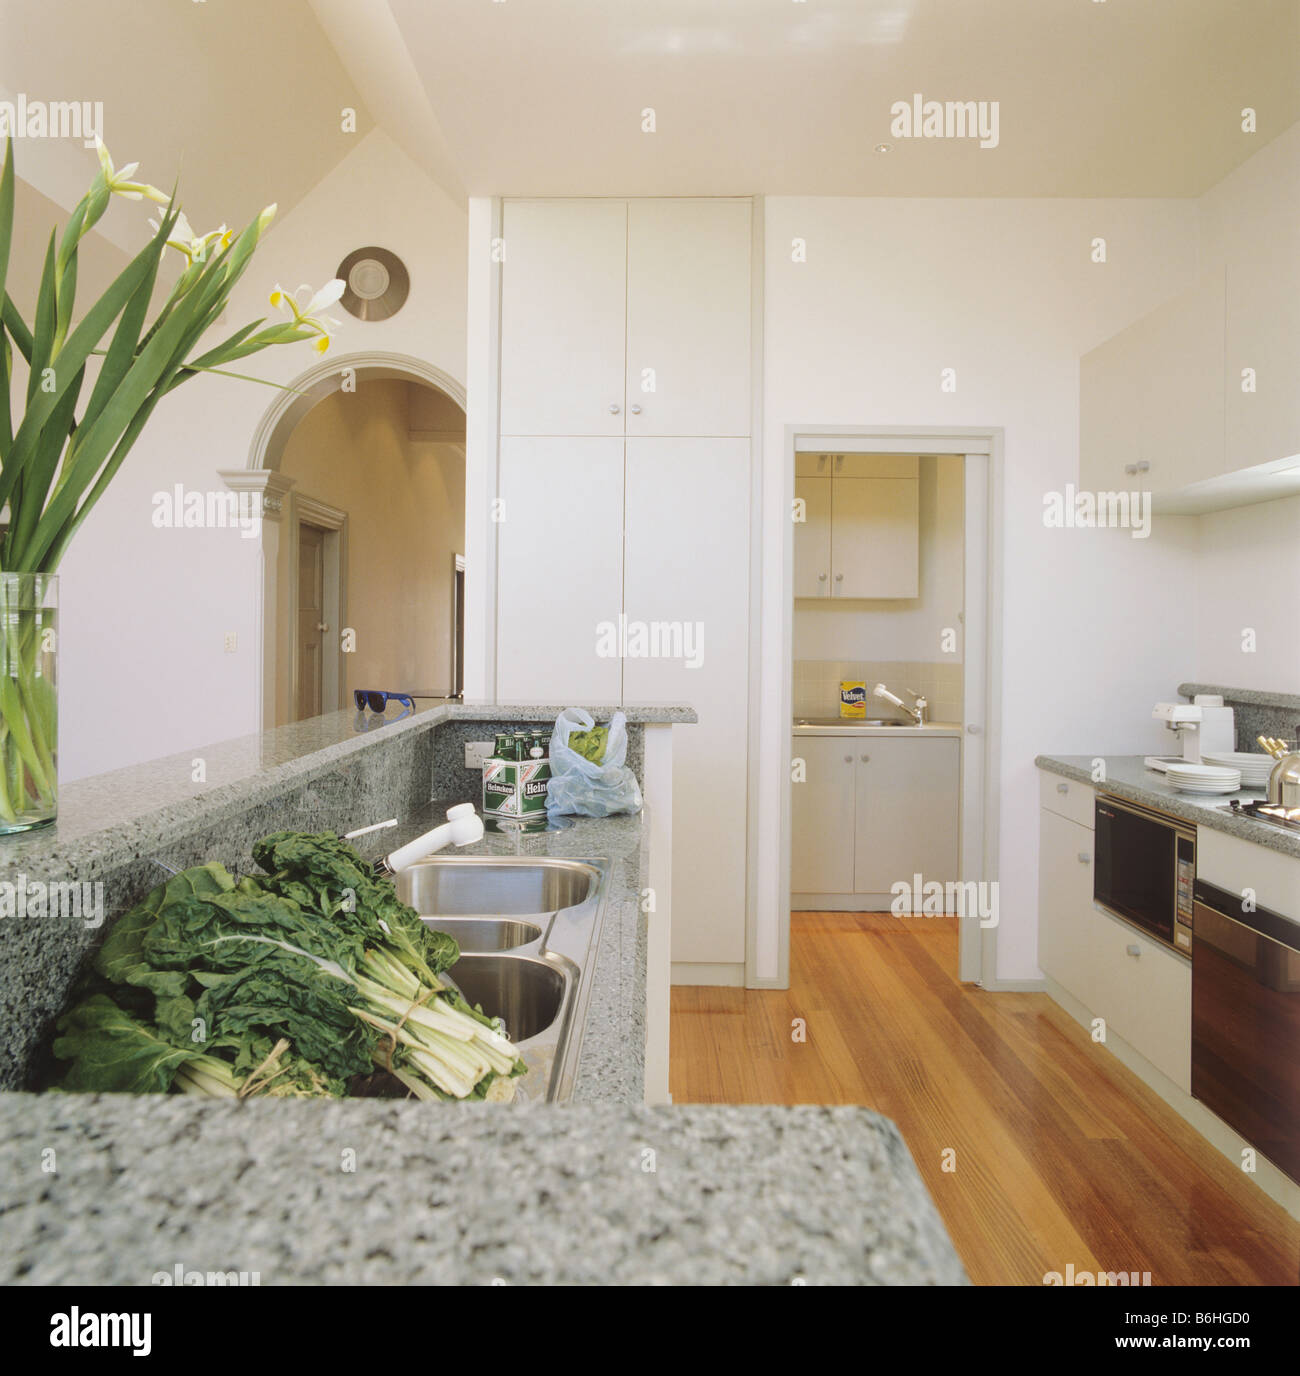 Galley Kitchen Extension: Kitchen Extension Architectural Monochromatic Stock Photos